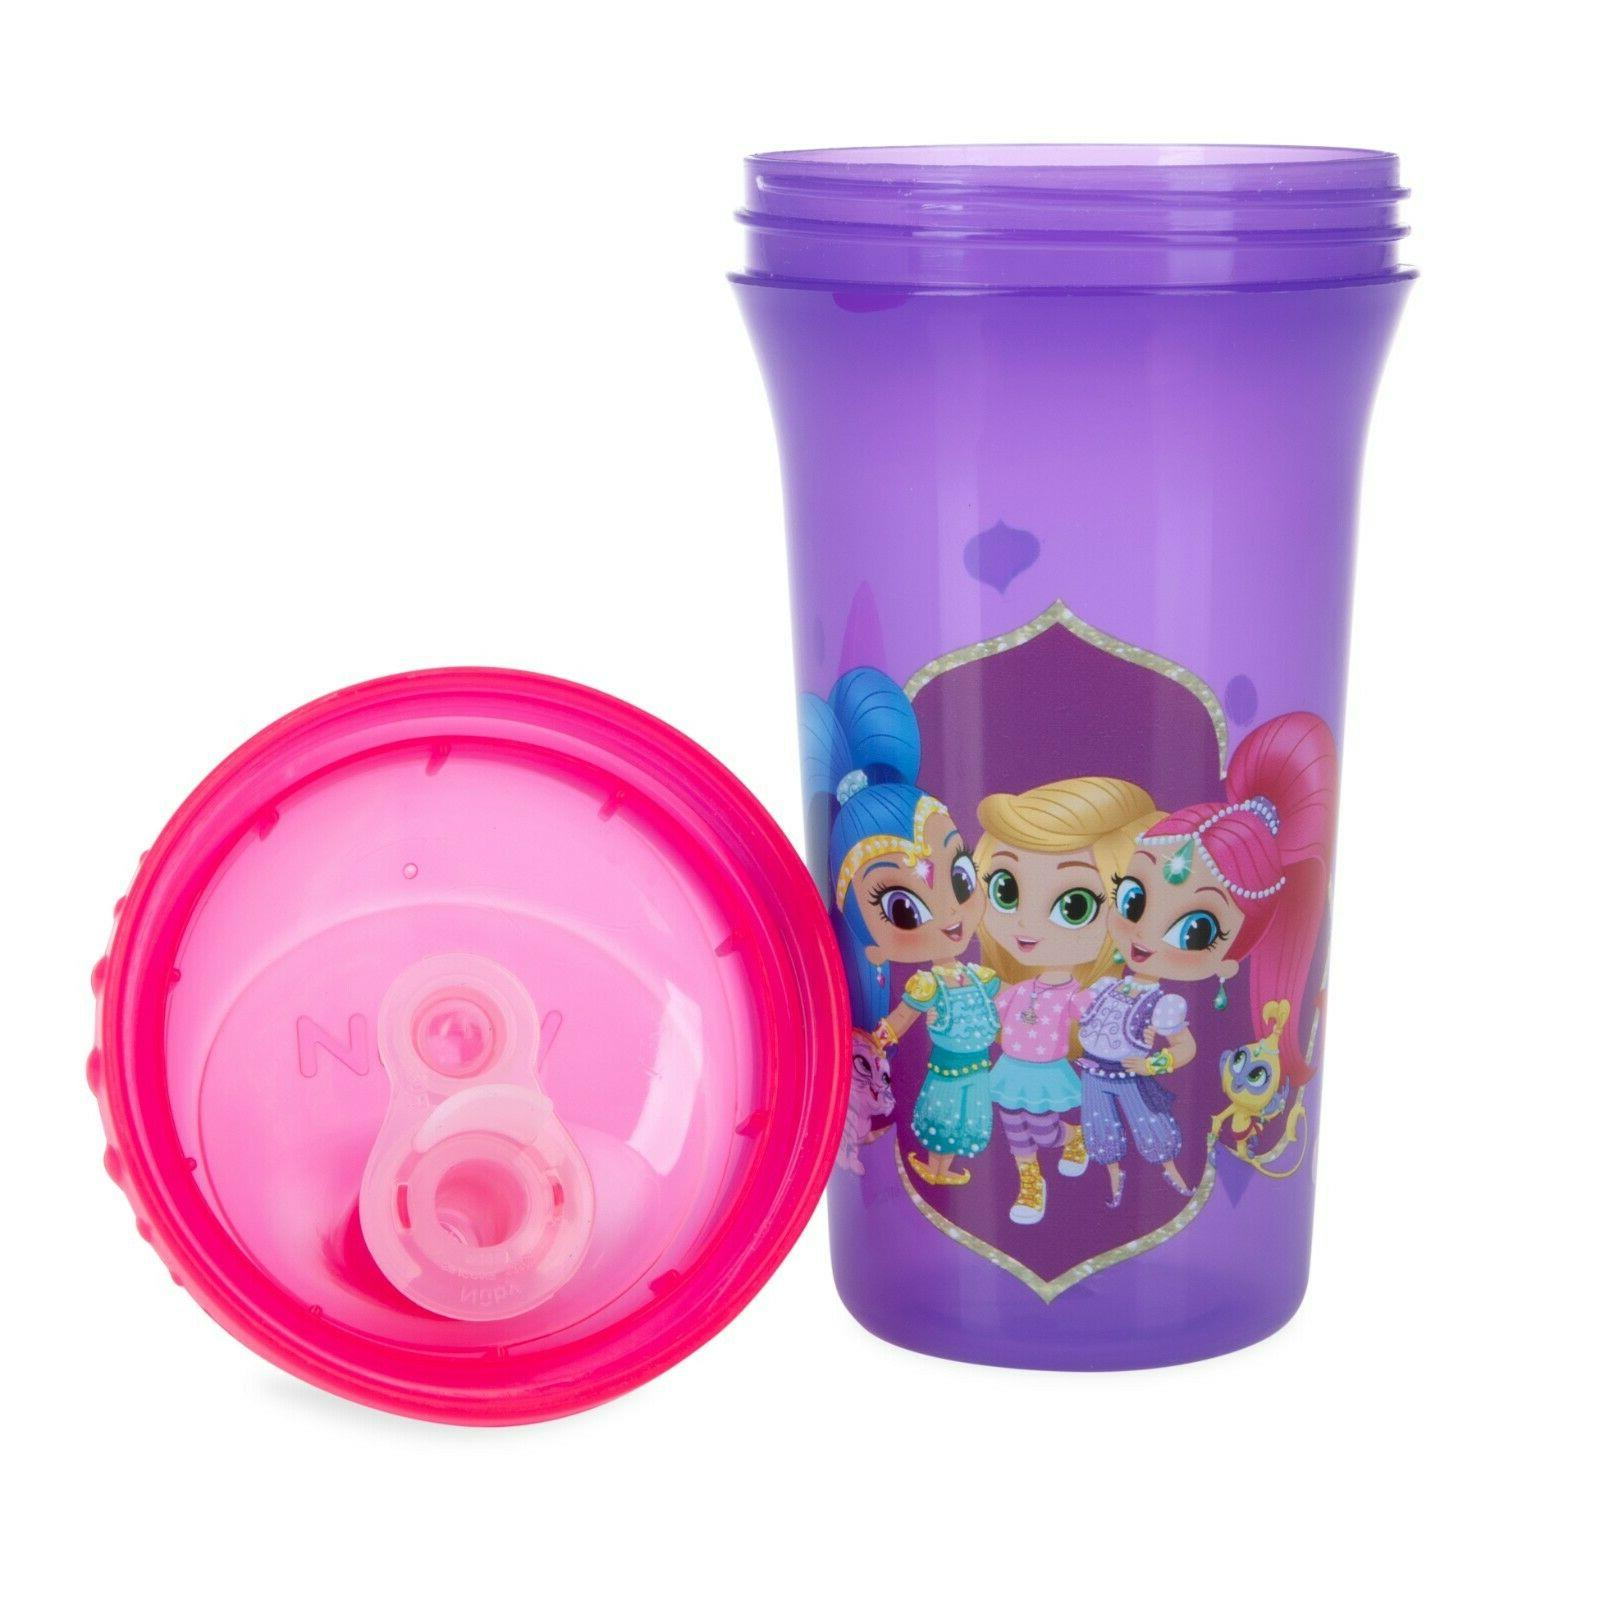 Nuby & No-spill Sippy Cups - Hard Spout